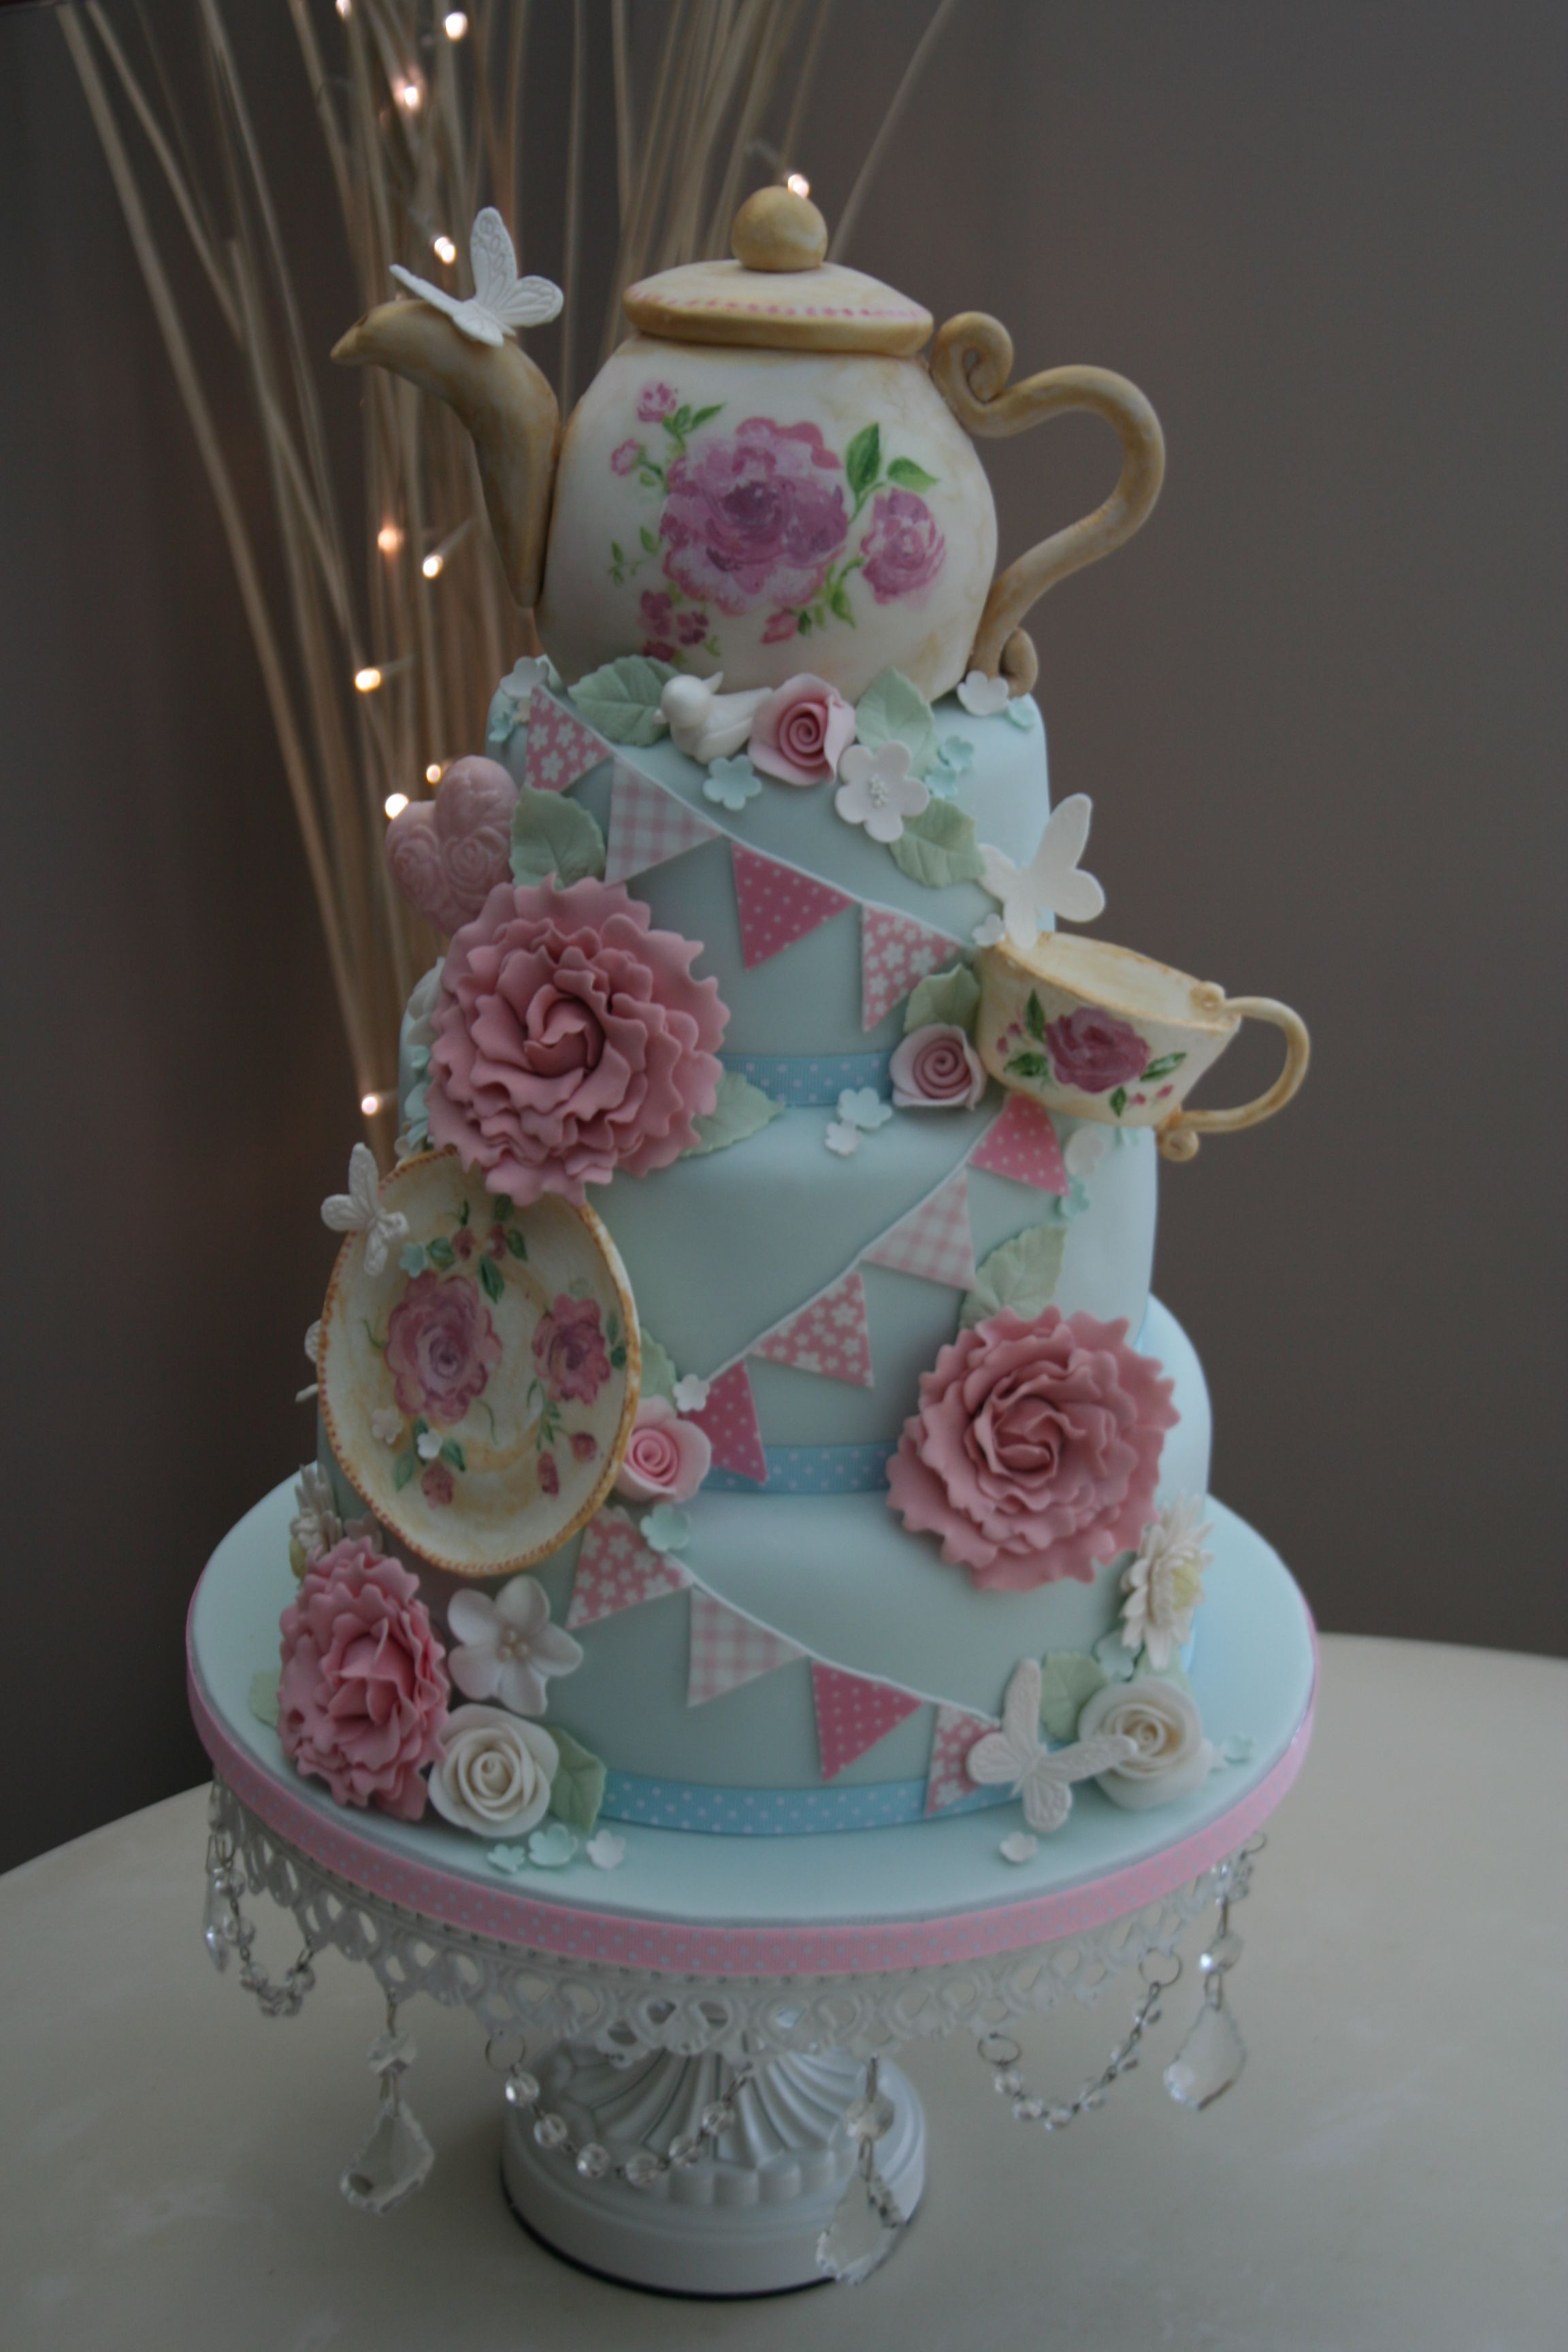 Tea Party Cake Ideas  Pretty colors and I like the flowers tea items but I d